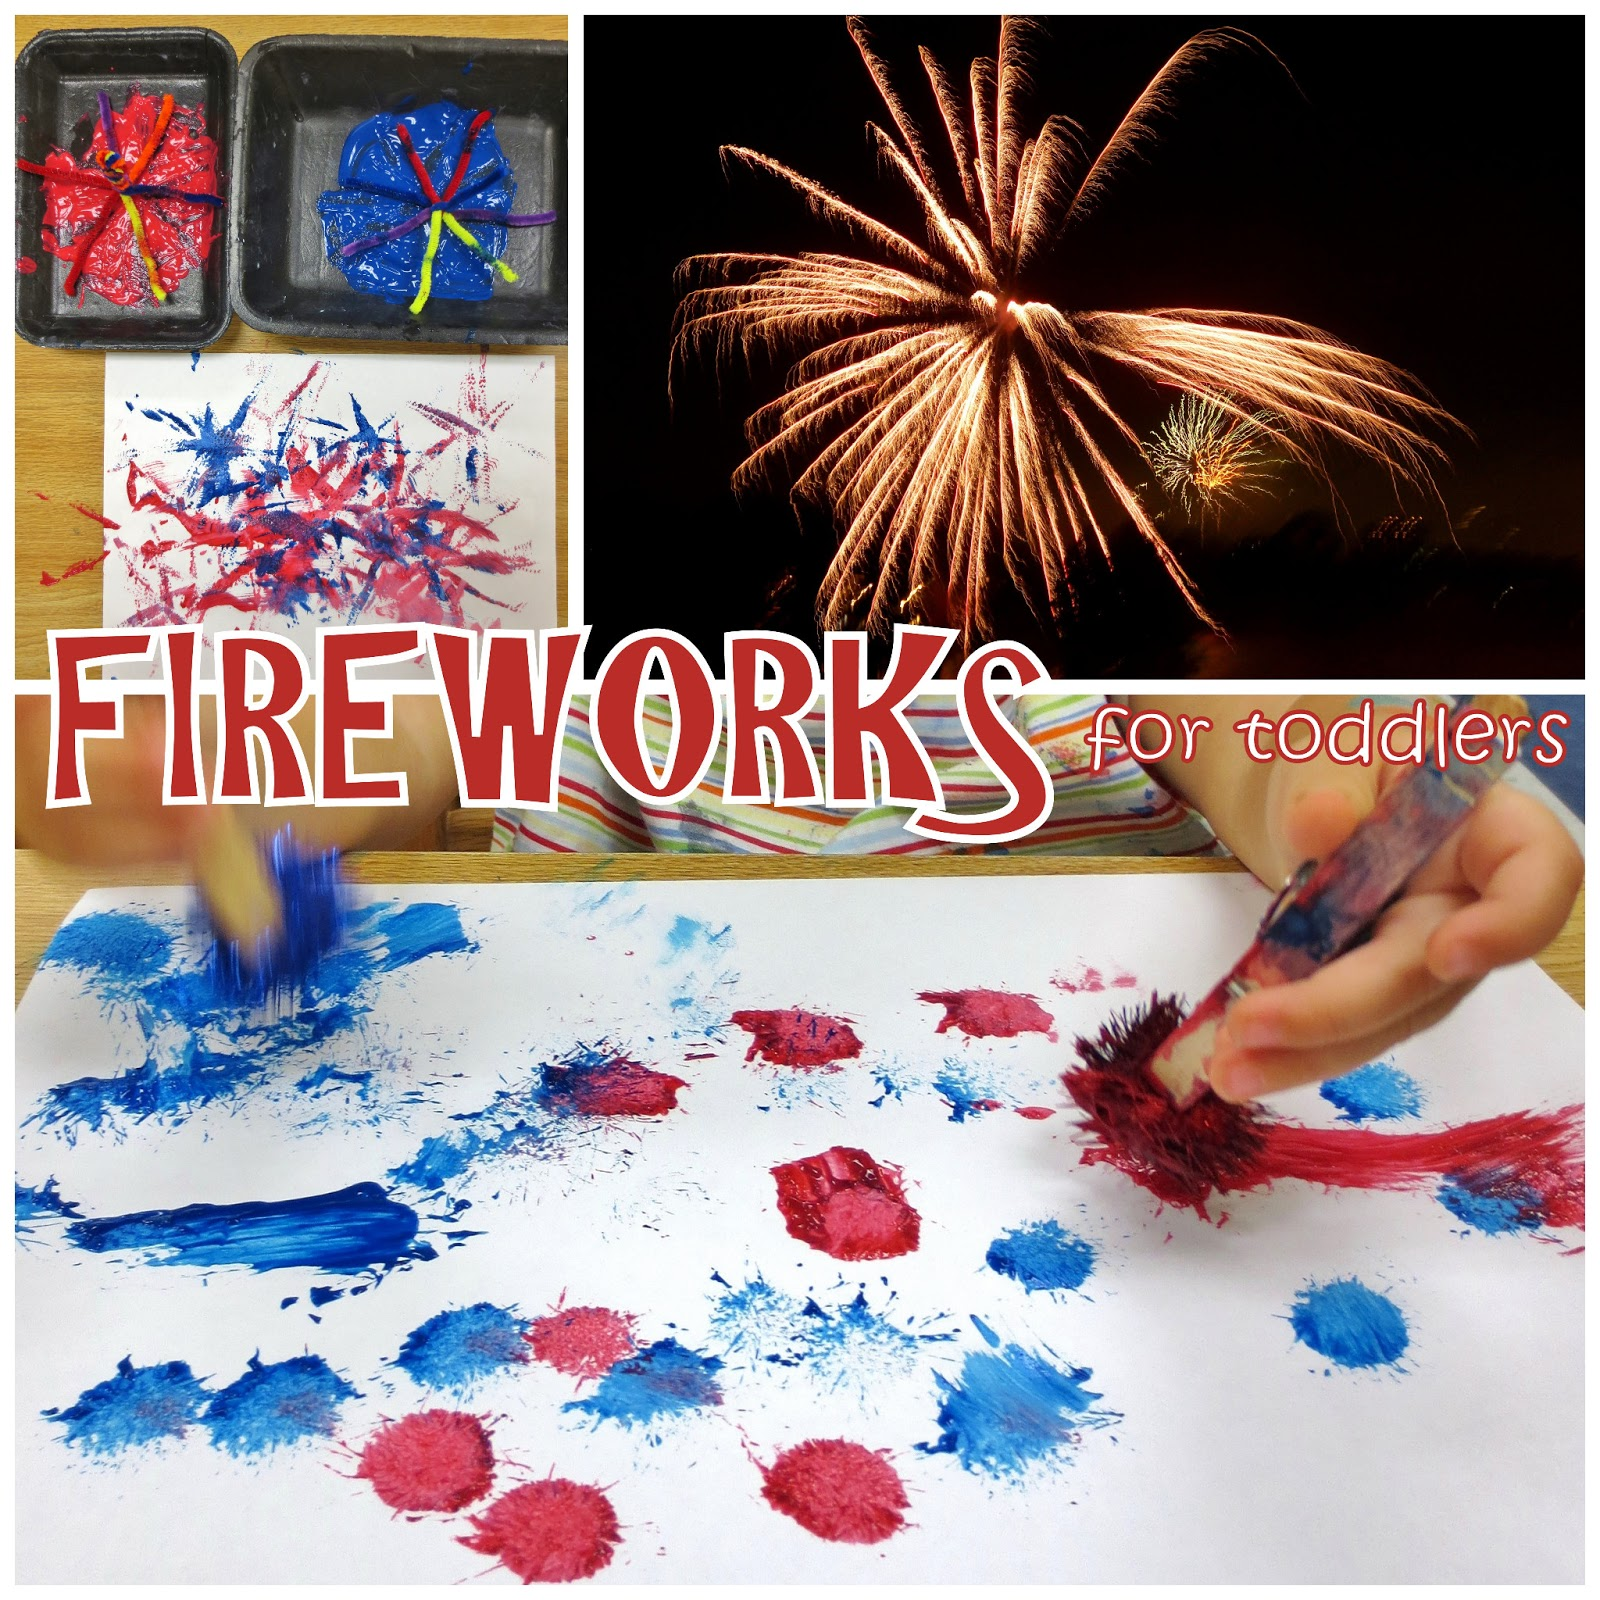 Princesses Pies Amp Preschool Pizzazz Fireworks For Toddlers